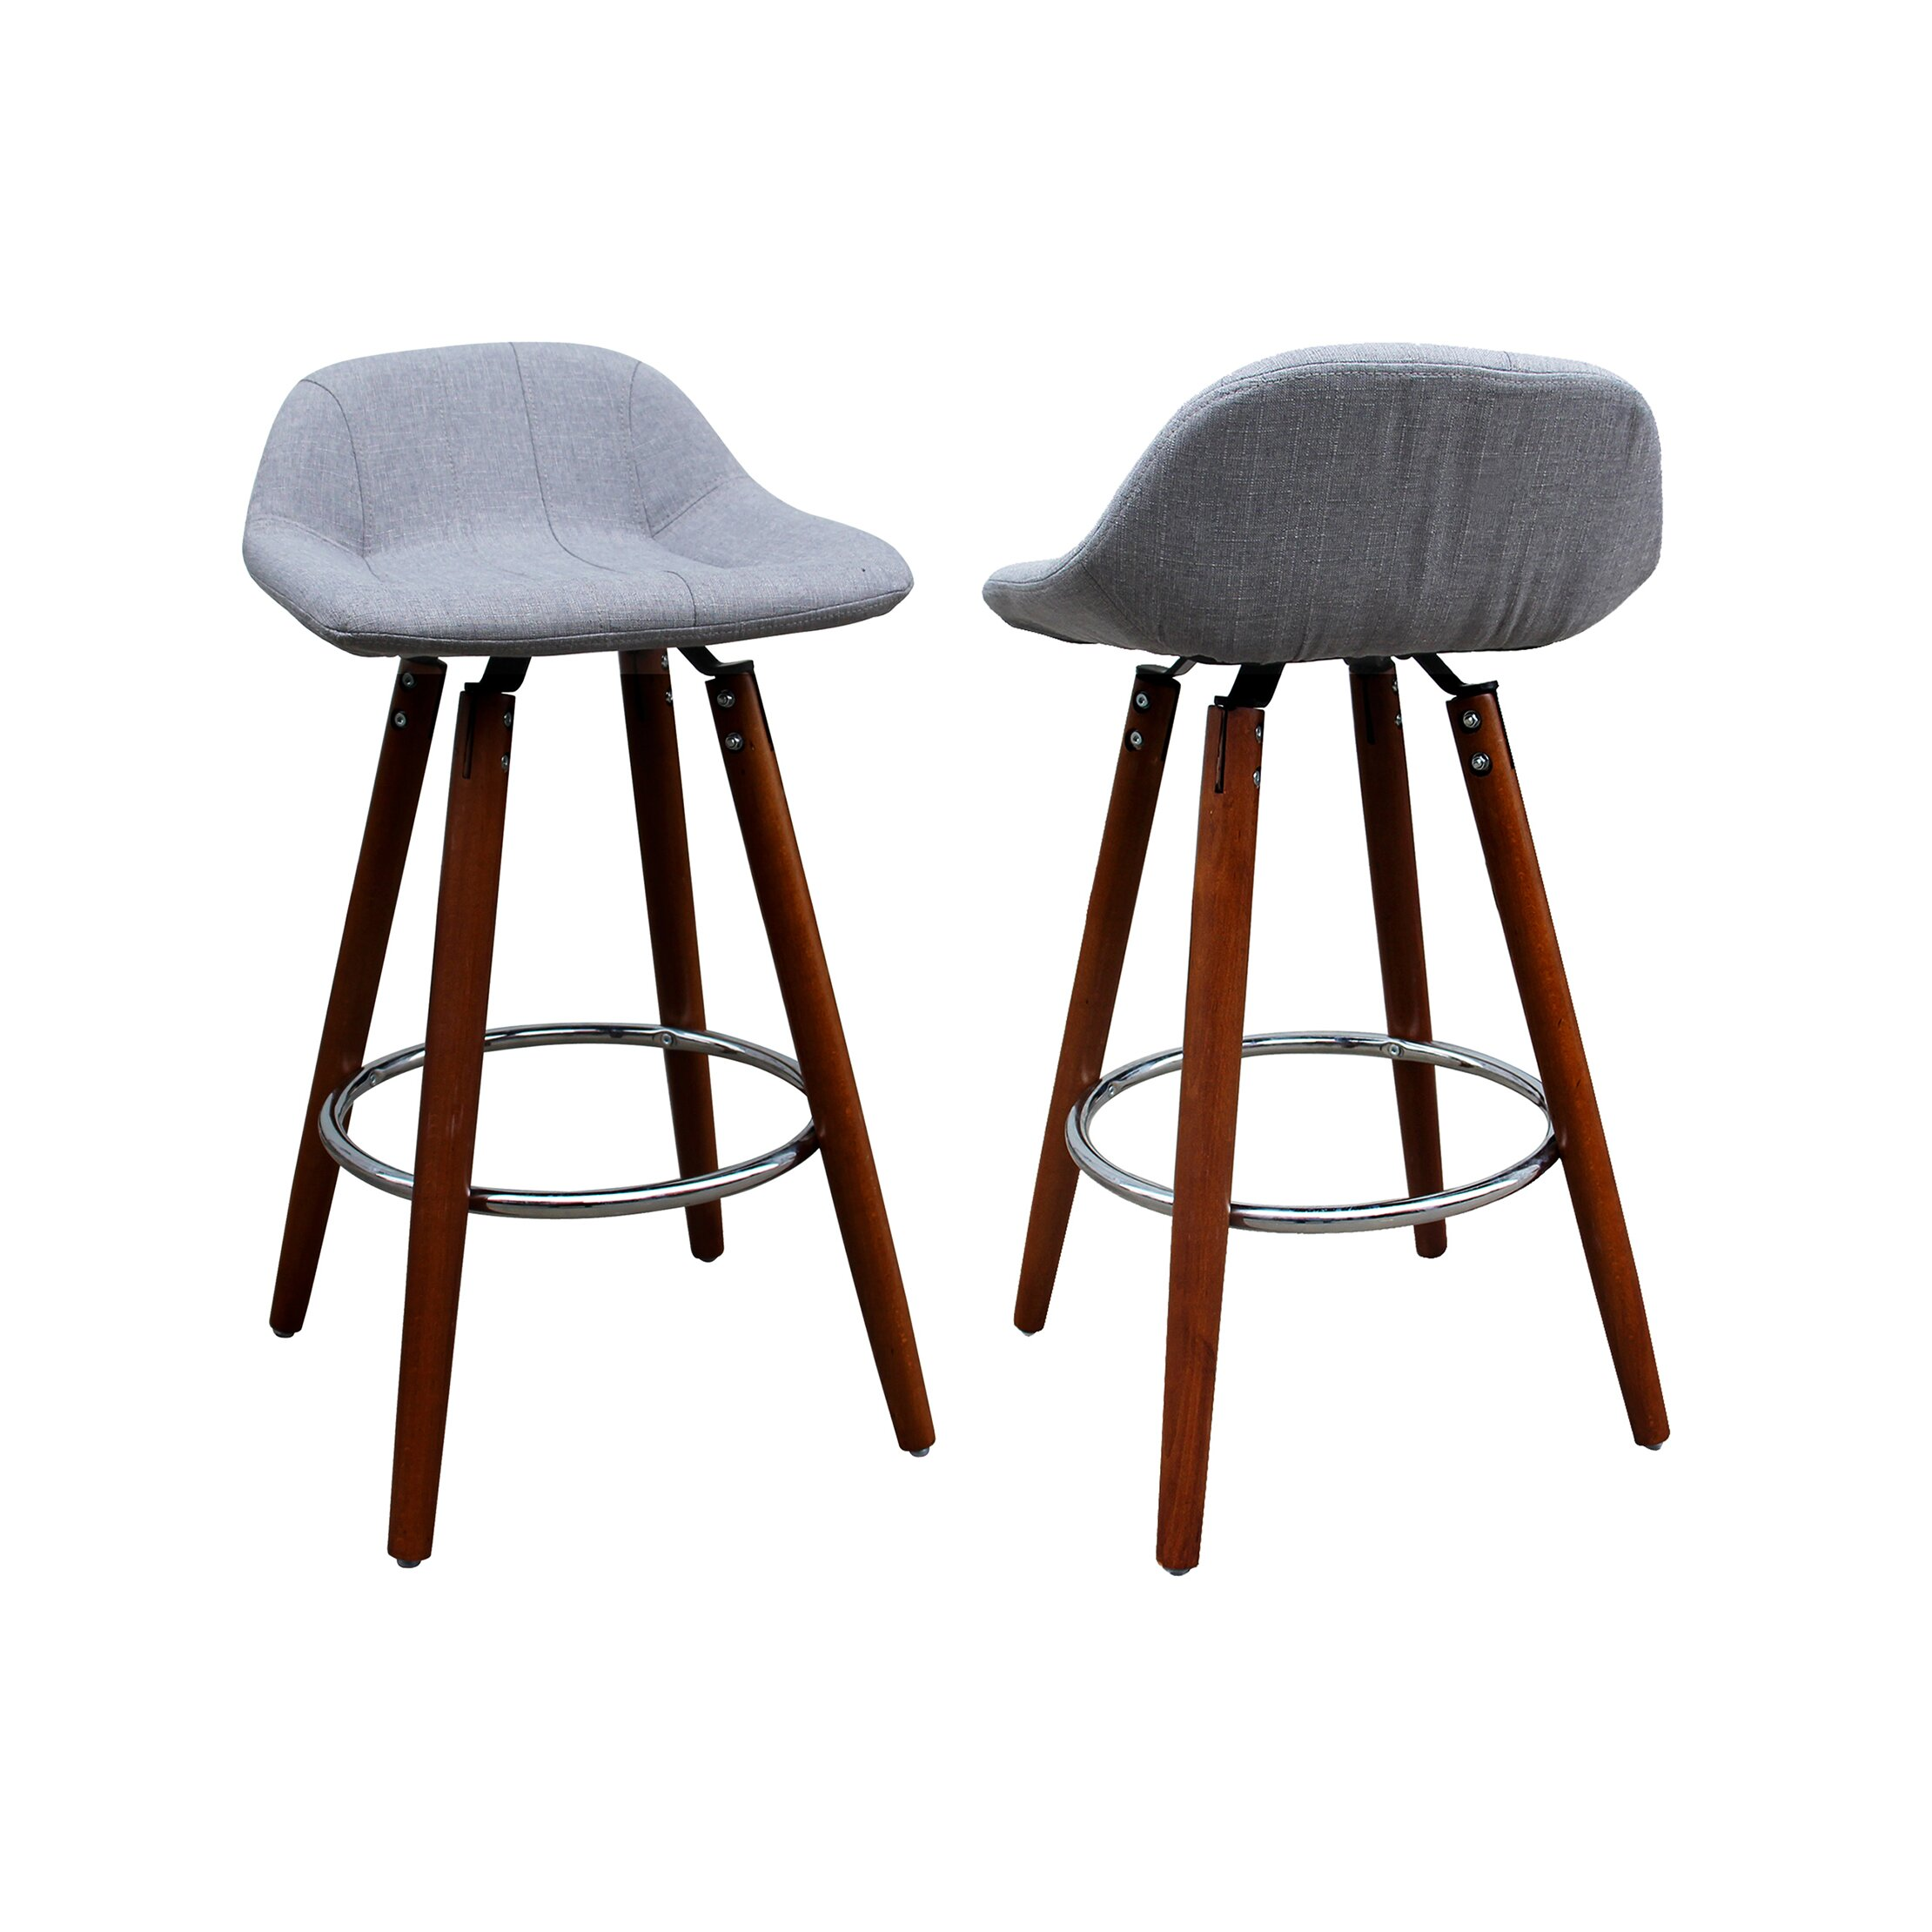 nspire 32quot Bar Stool amp Reviews Wayfair : 26 Bar Stool 203 119GY from www.wayfair.com size 2220 x 2220 jpeg 407kB